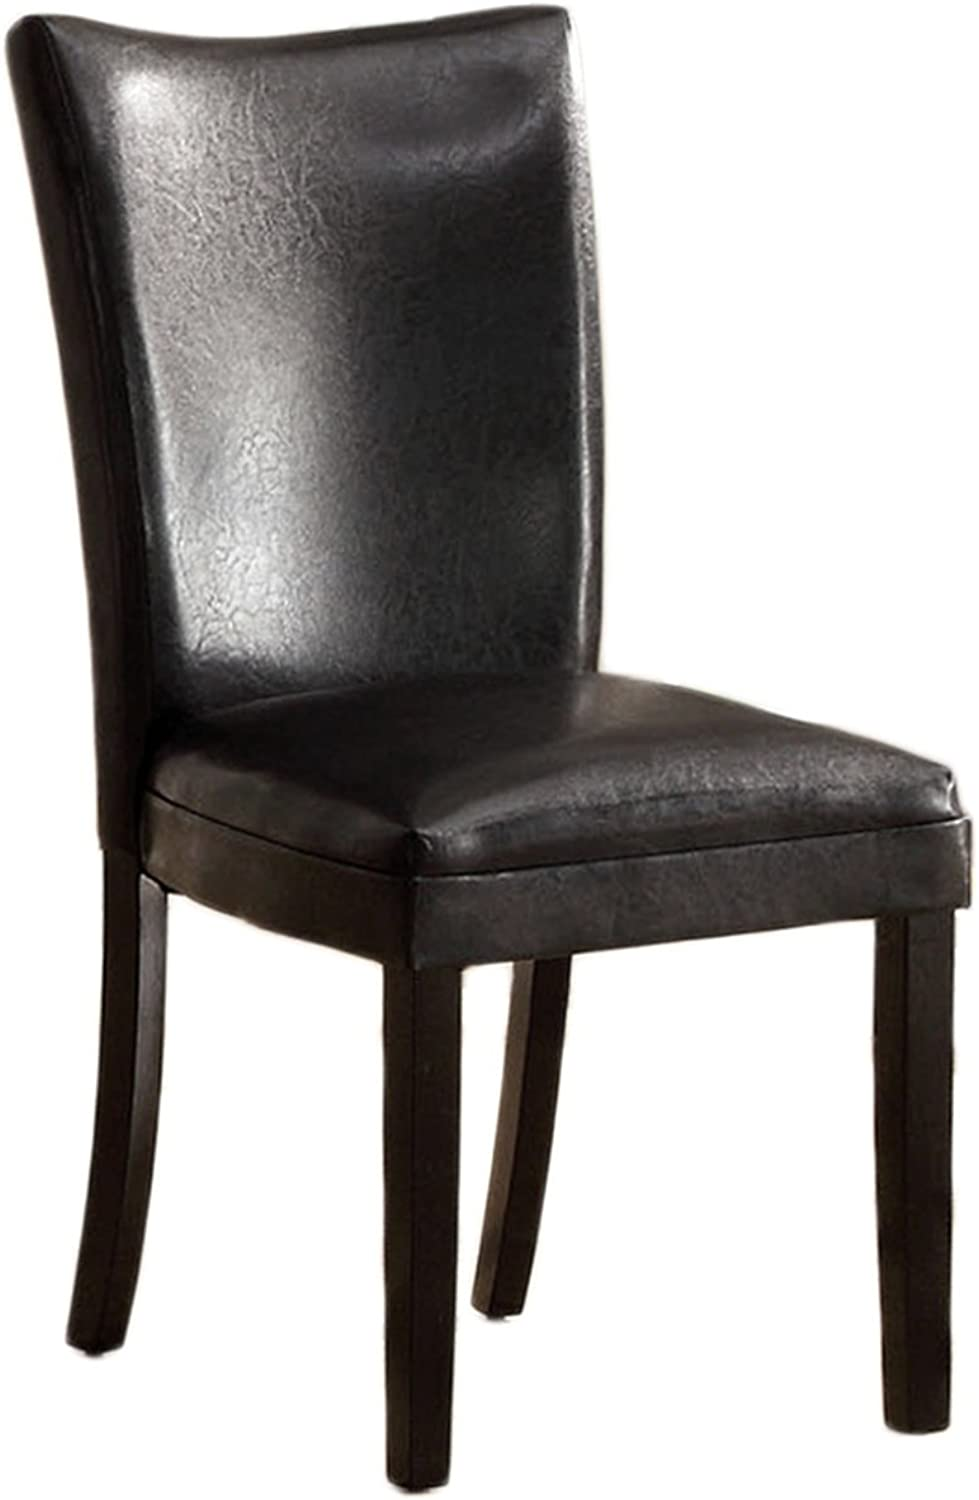 Furniture of America Jacob Parson Style Leatherette Dining Side Chair, Black